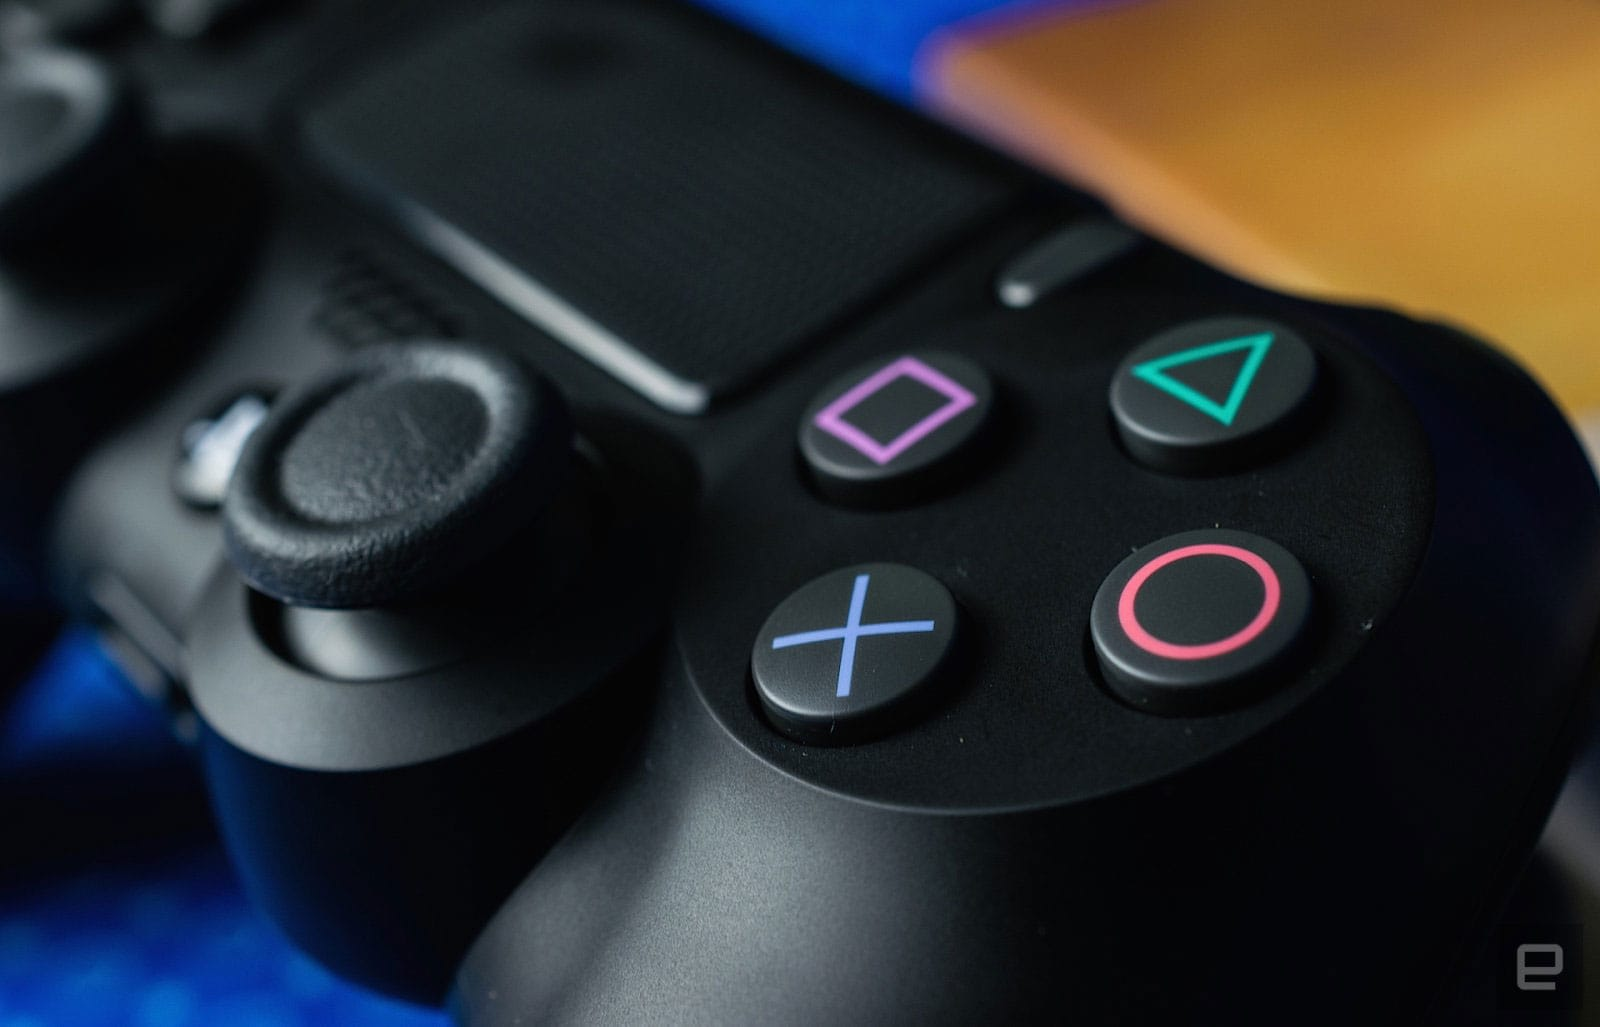 The Morning After: The best games on PS4 and Galaxy S10+ reviewed